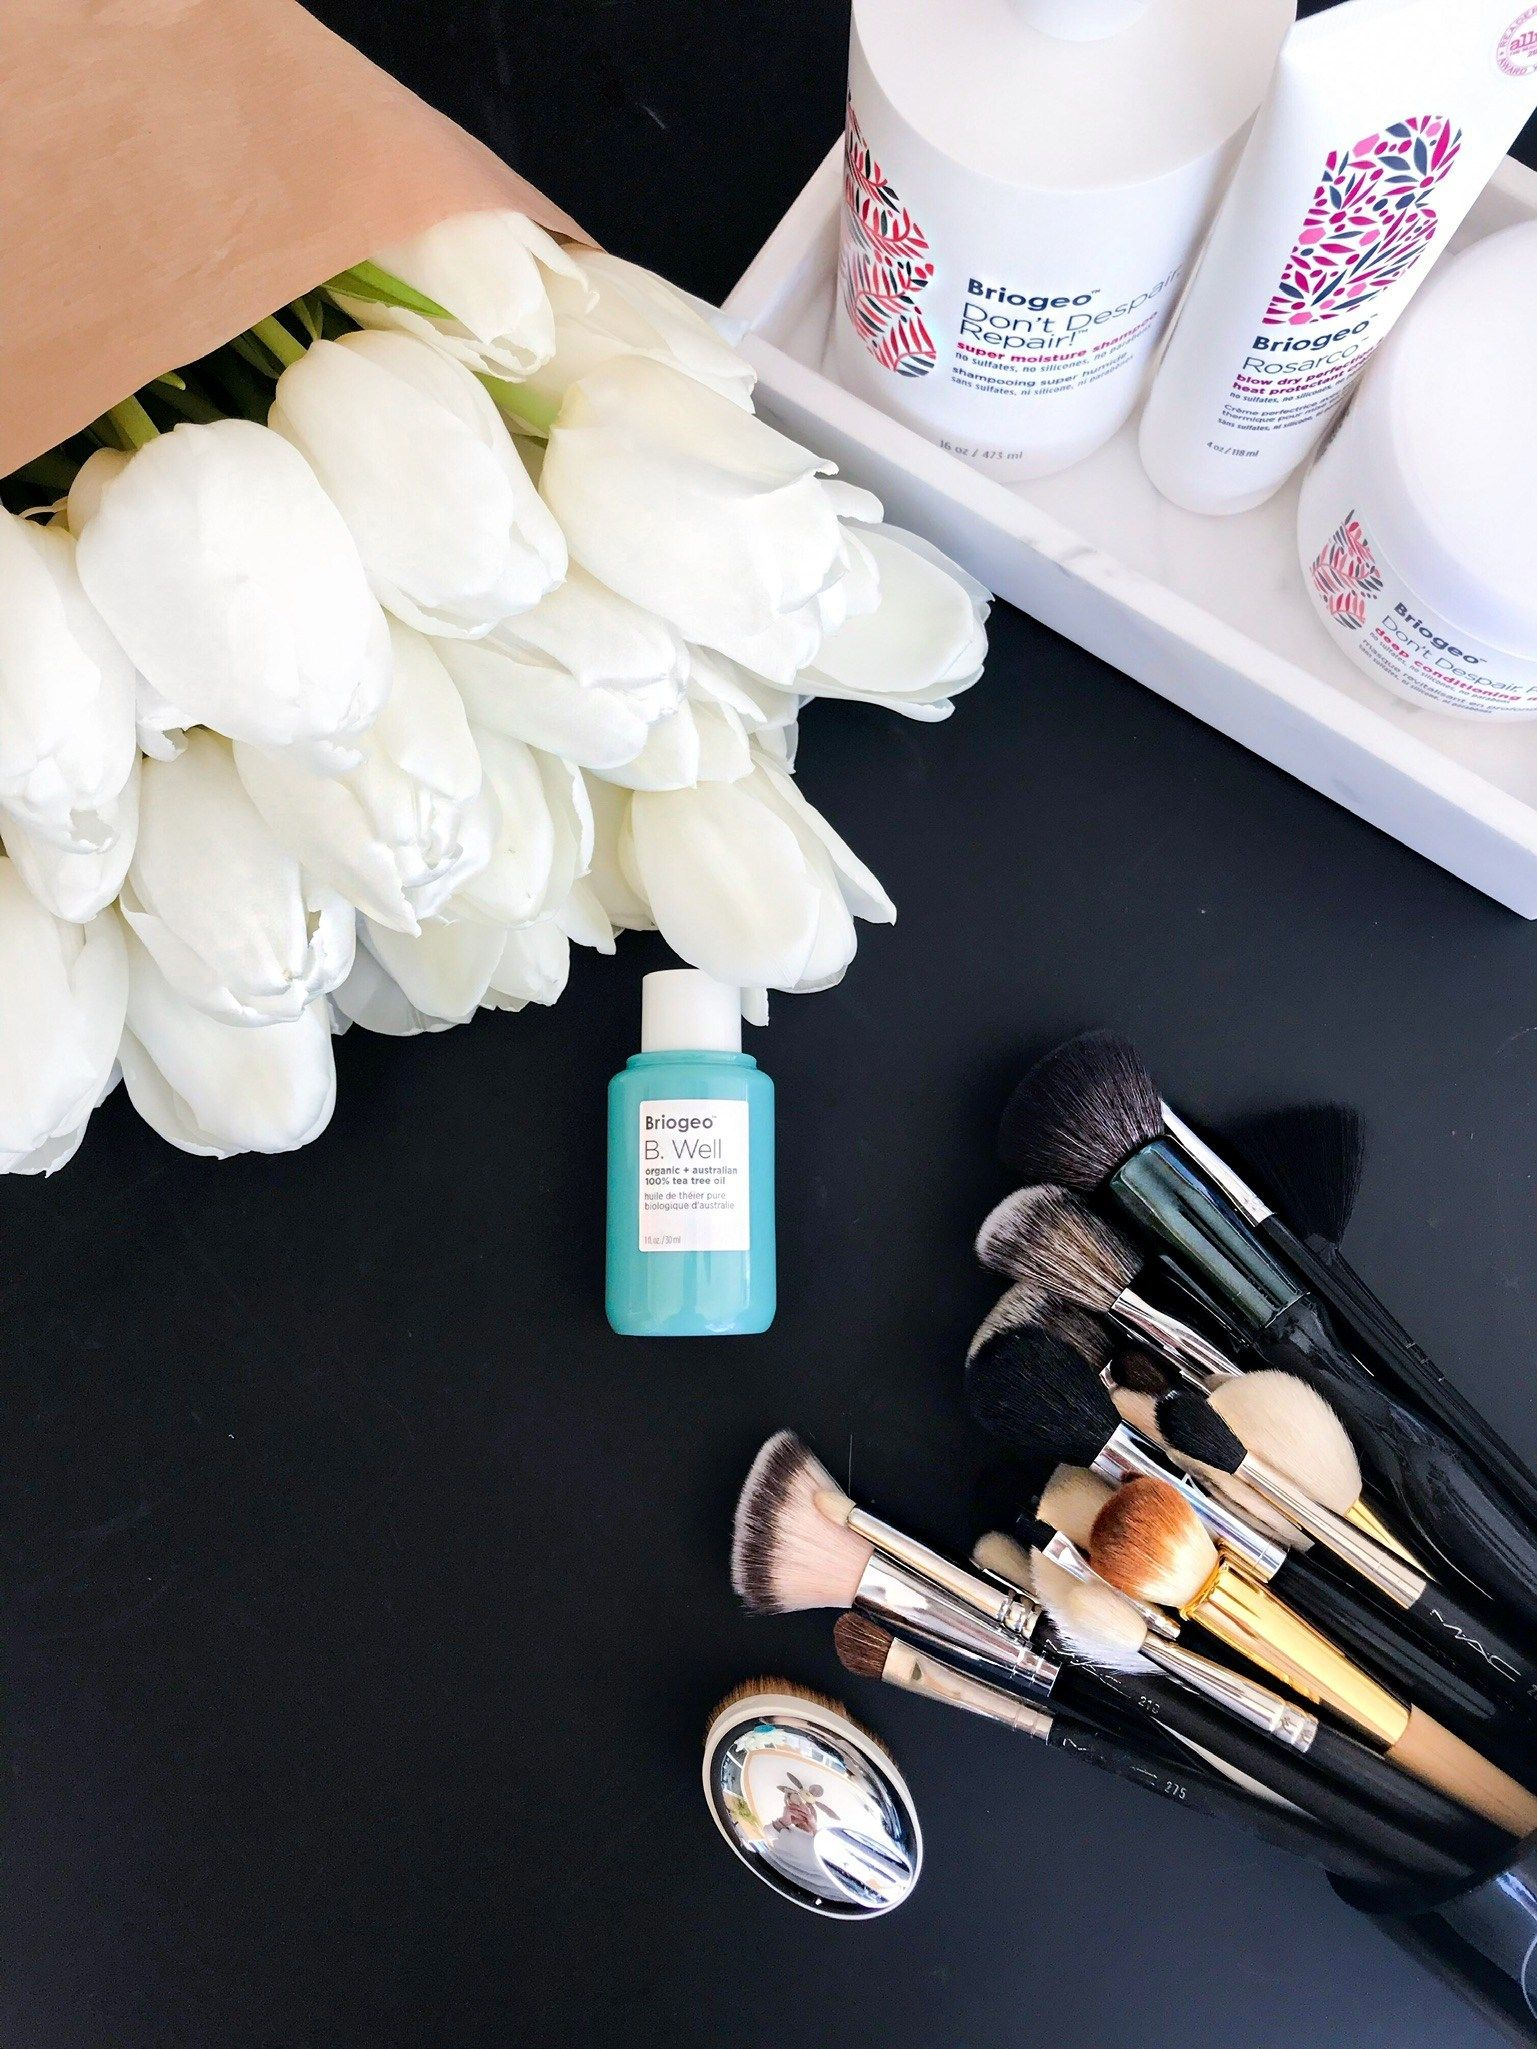 How To Make Your Own Makeup Brush Cleaning Solution Using